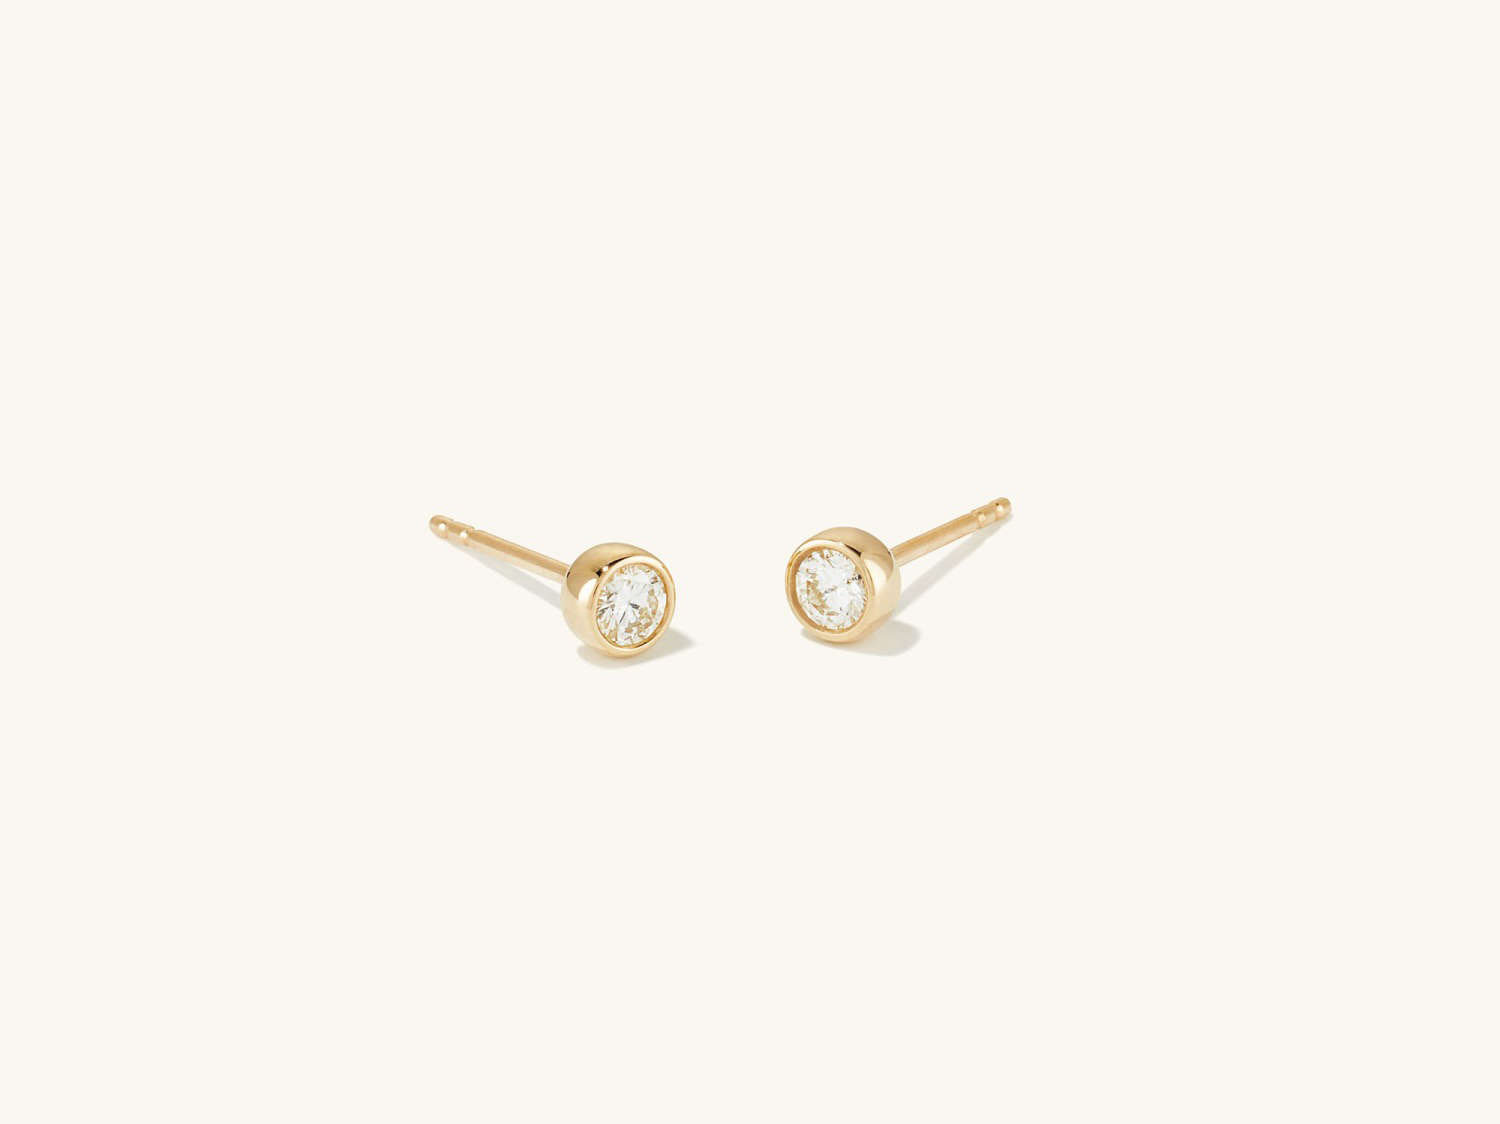 round cut diamond stud earrings with yellow gold posts